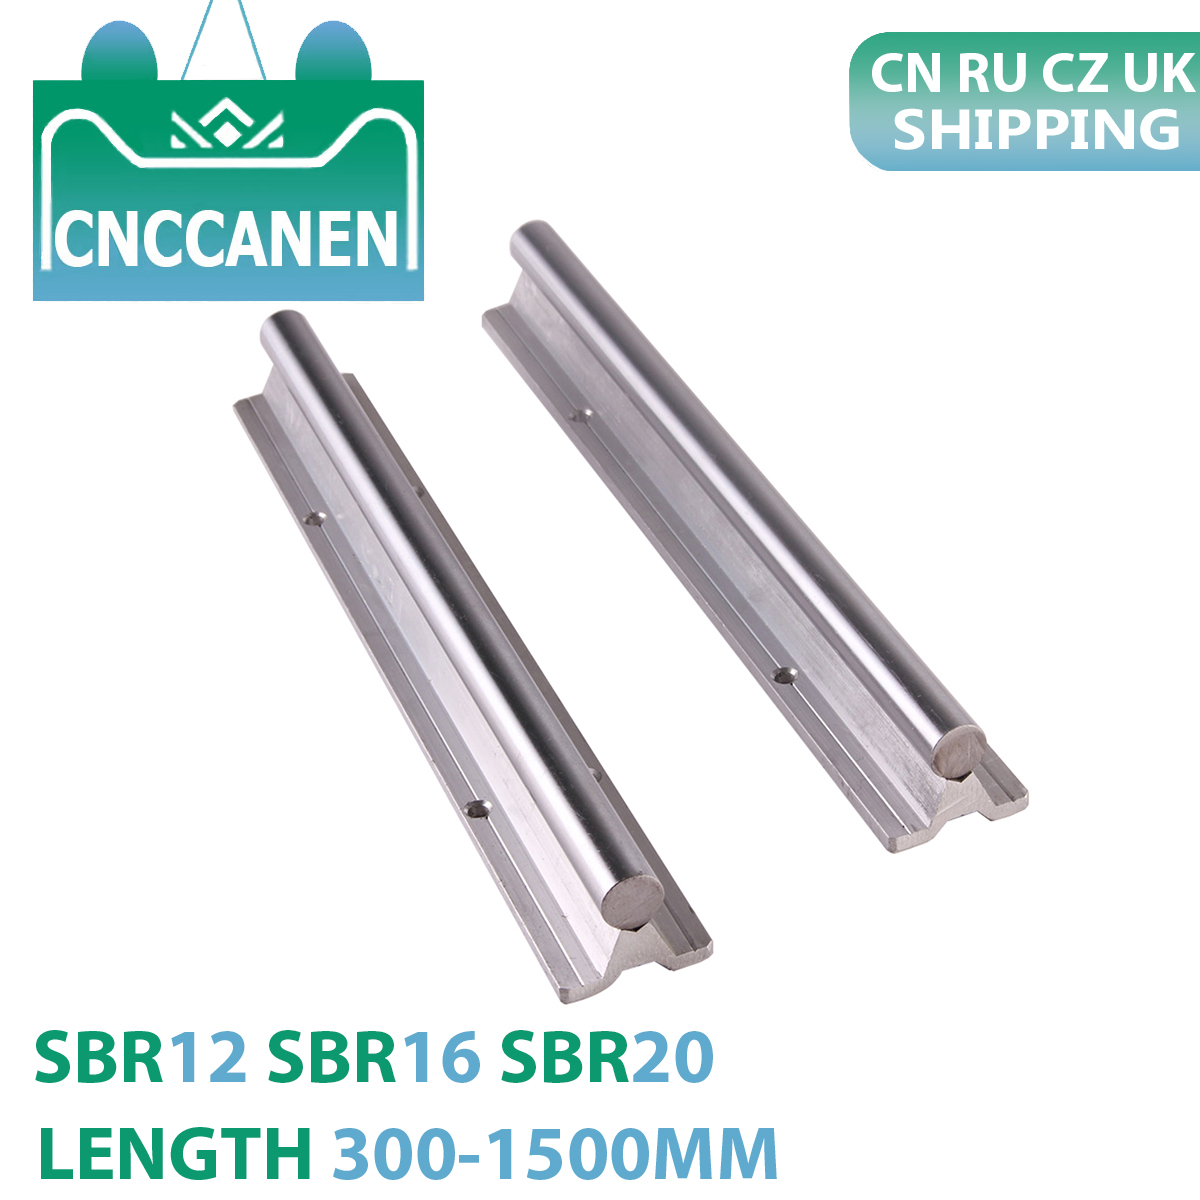 2PCS SBR12 SBR16 SBR20 12mm 16mm 20mm Linear Guide Rail Length 300-1500mm Fully Supported Linear Rail Shaft Rod For CNC Parts